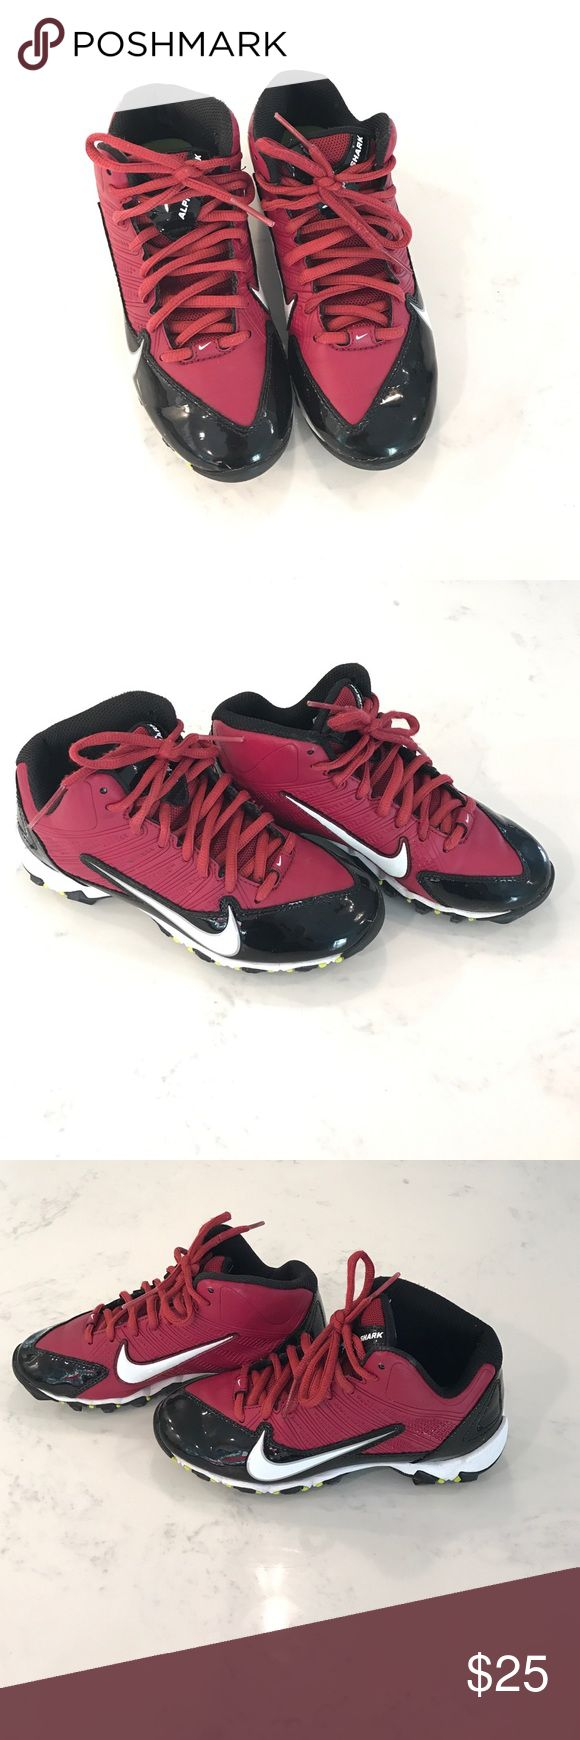 Boys Nike football cleats Maroon and black boys football cleats. Like new. In excellent condition. Nike Shoes